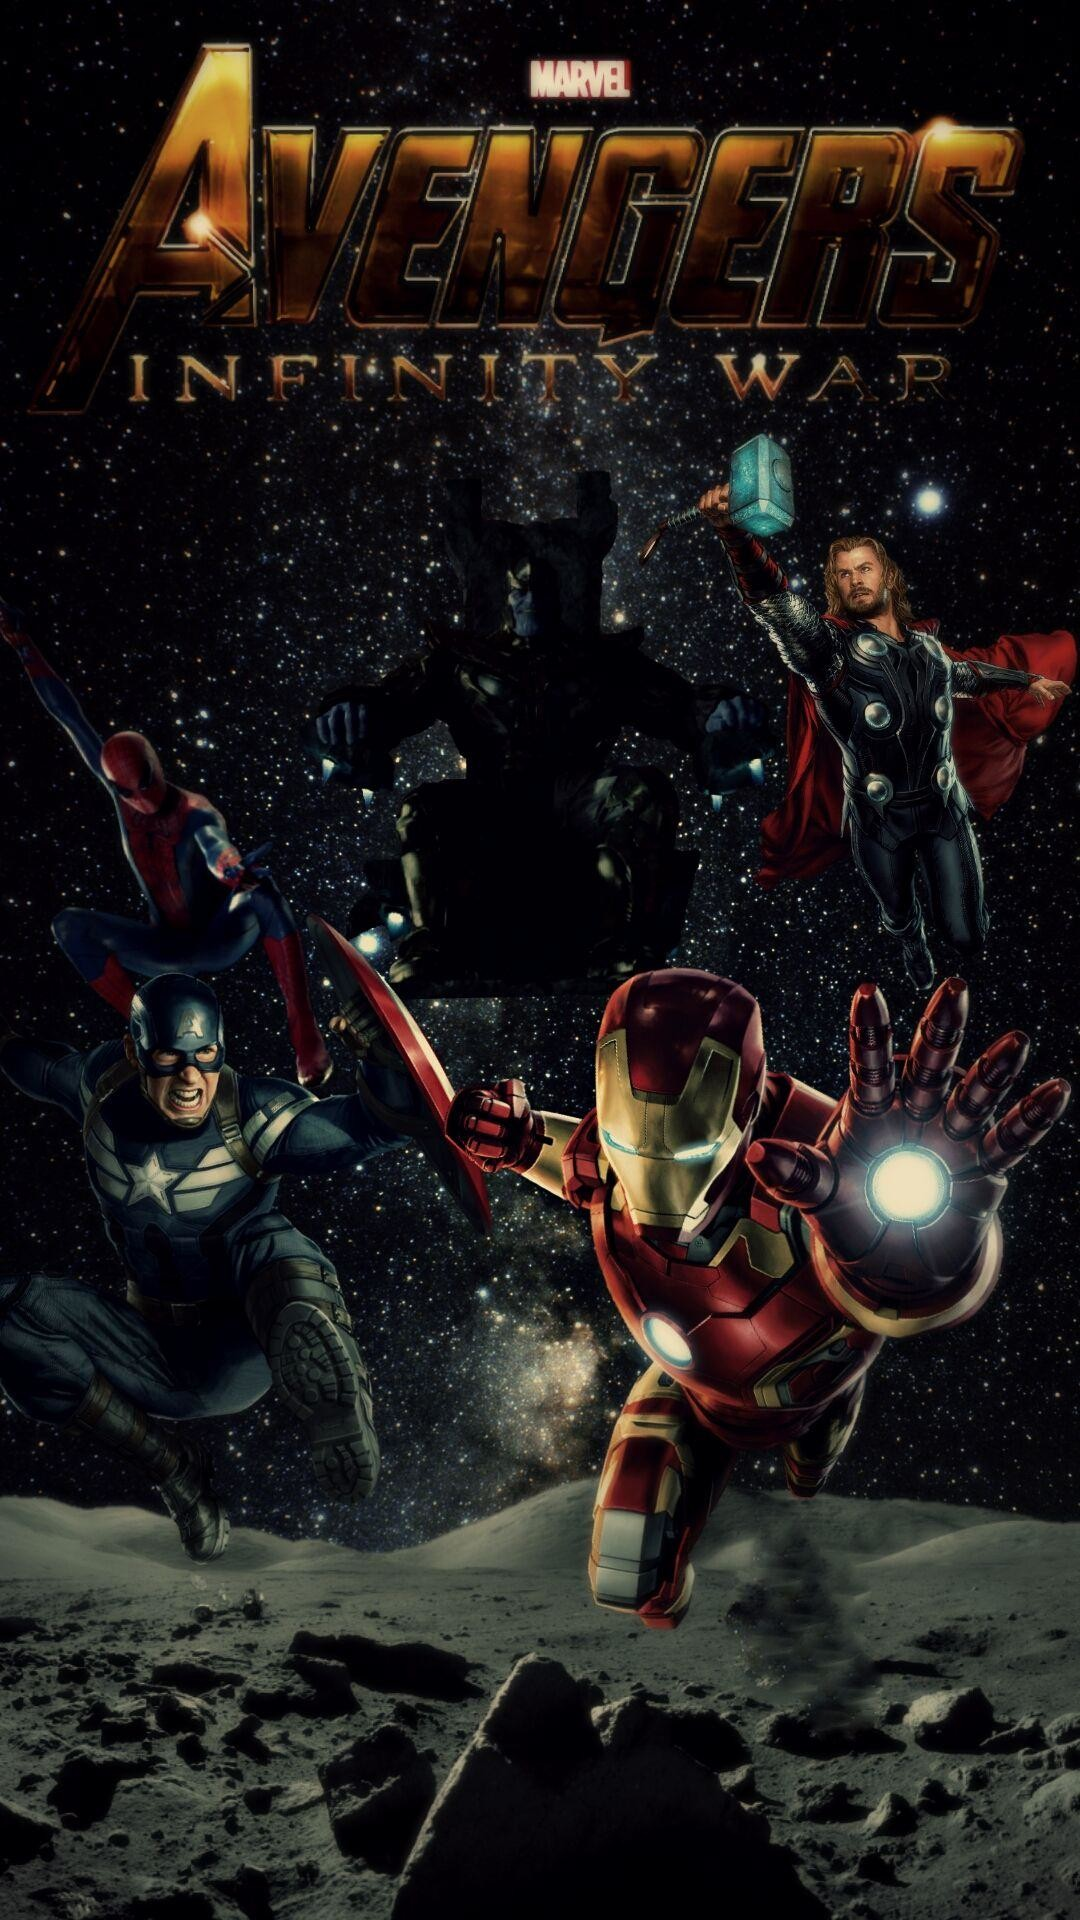 … free download avengers iphone background page 2 of 3 wallpaper …